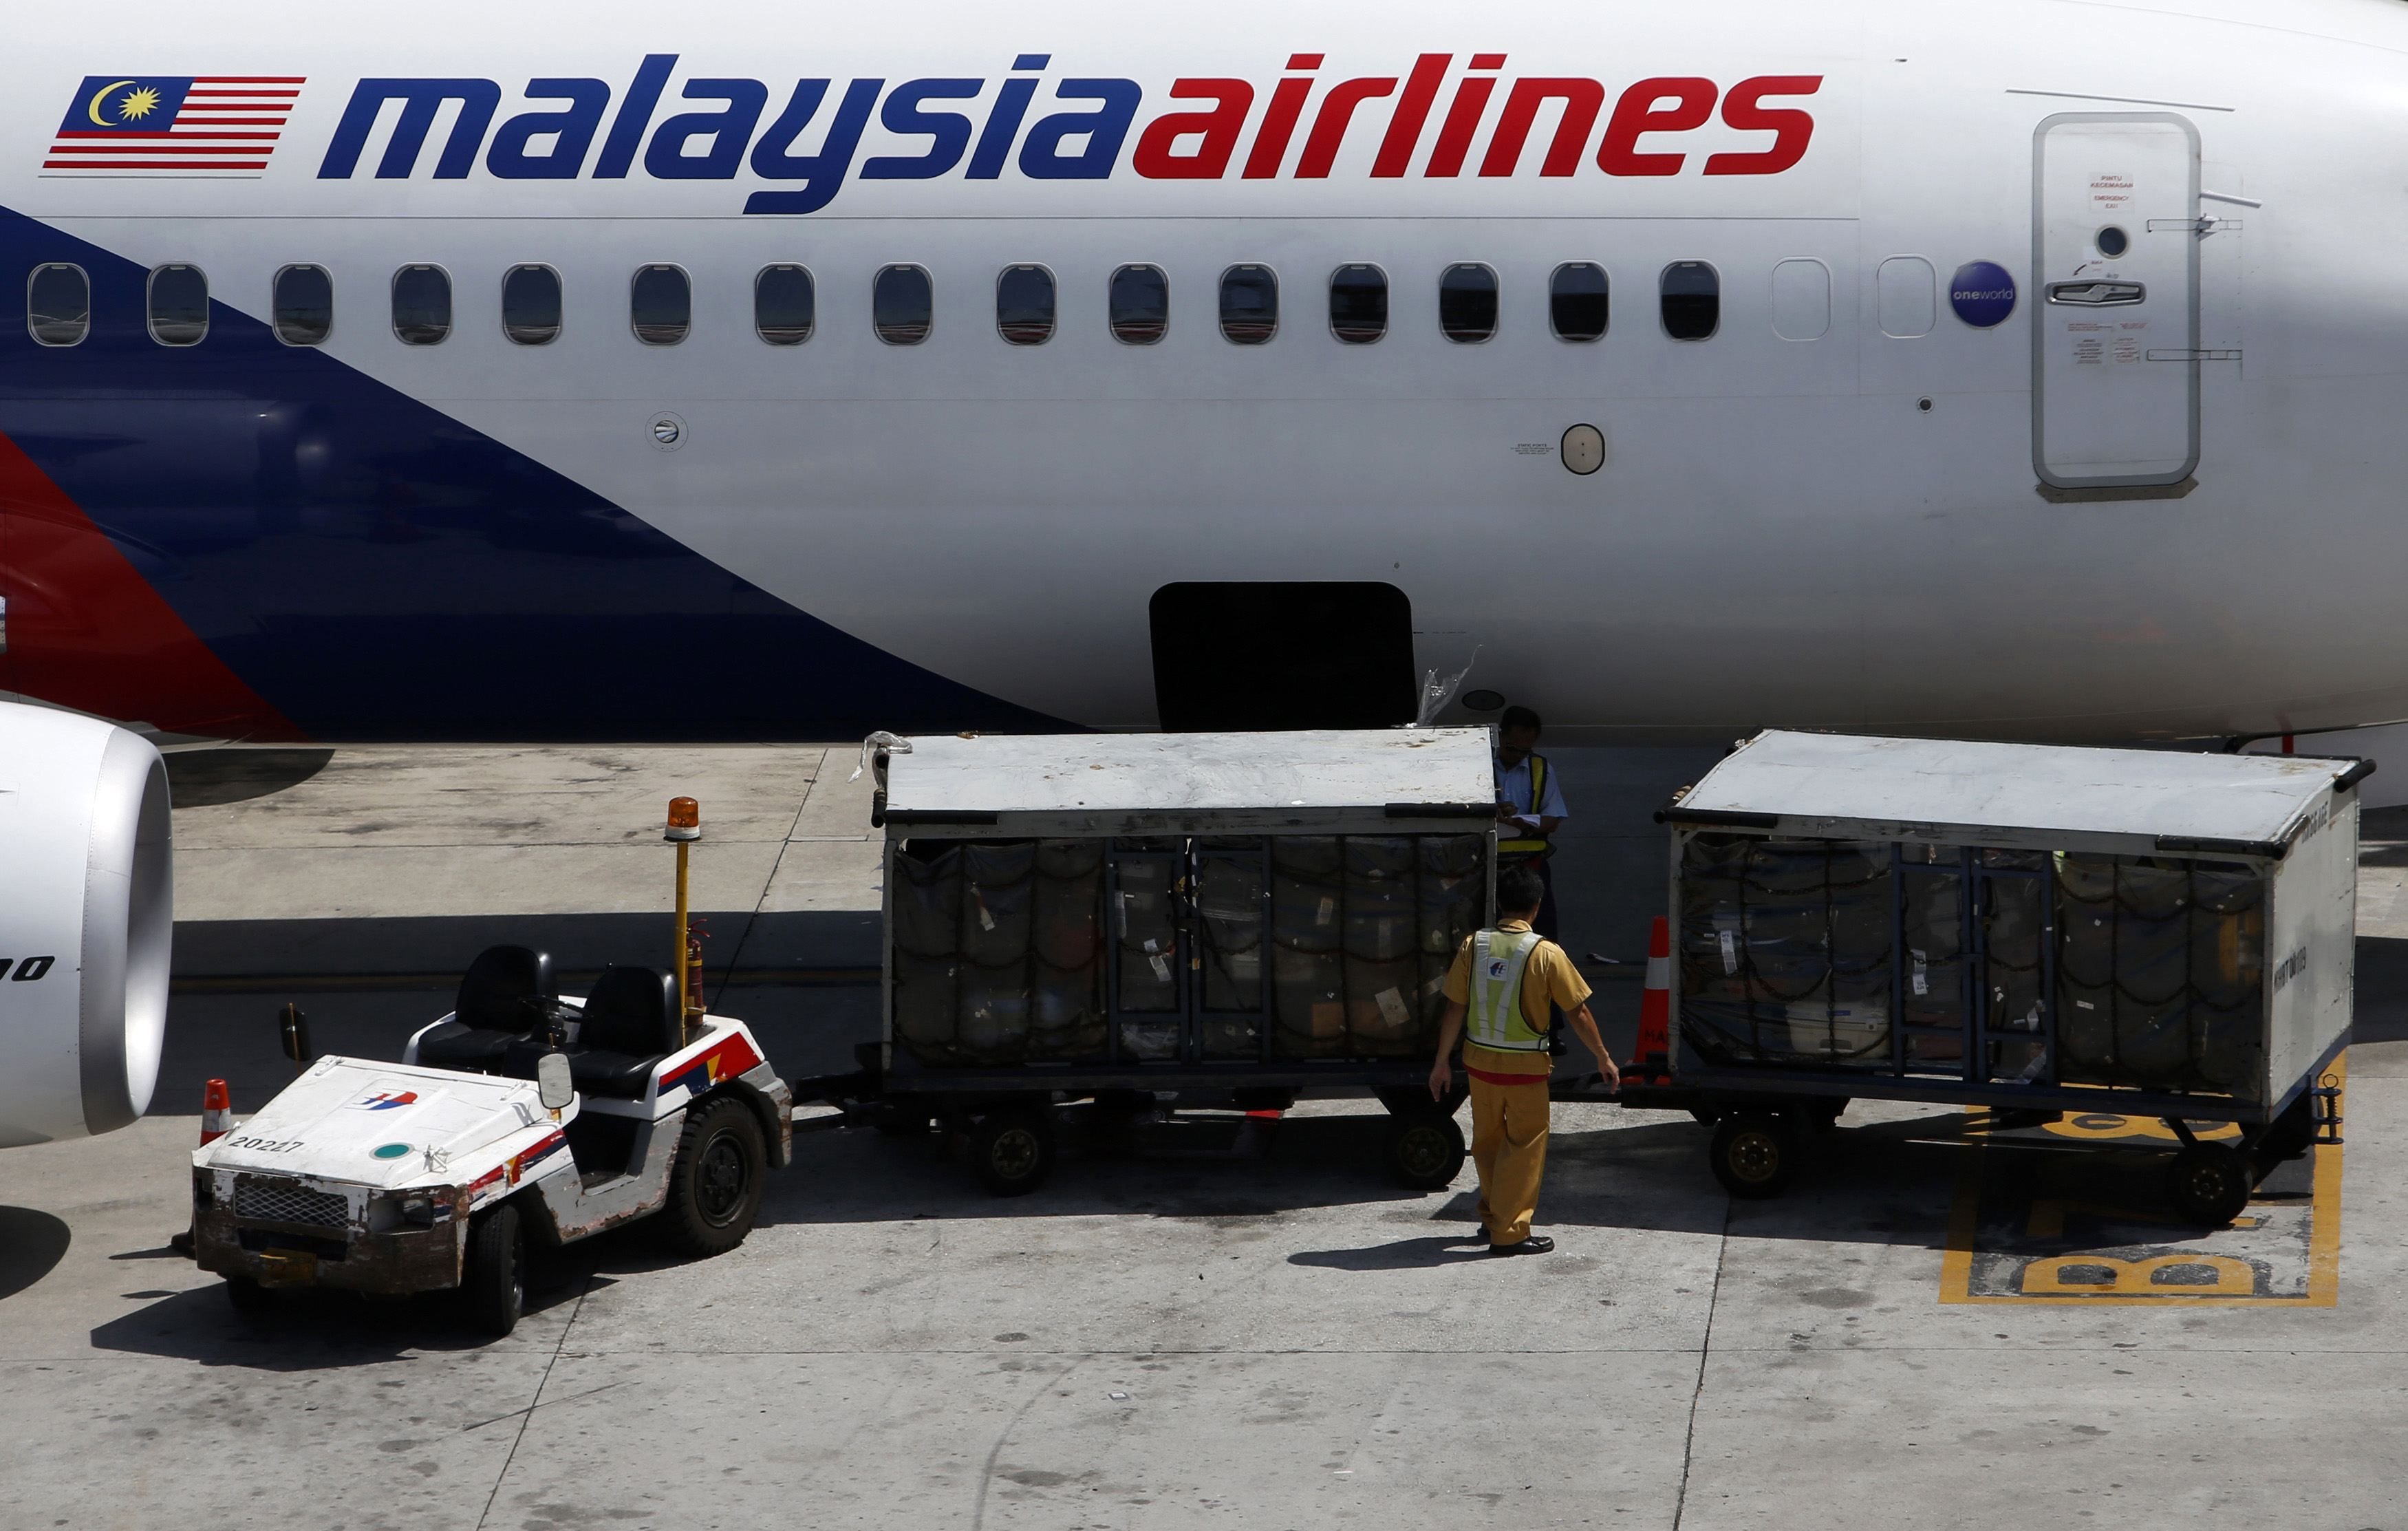 Malaysia Airlines imposed a temporary limitation on check-in baggage on its routes to Europe, citing safety and a need to conserve fuel due to 'unseasonably strong head winds'. — File pic